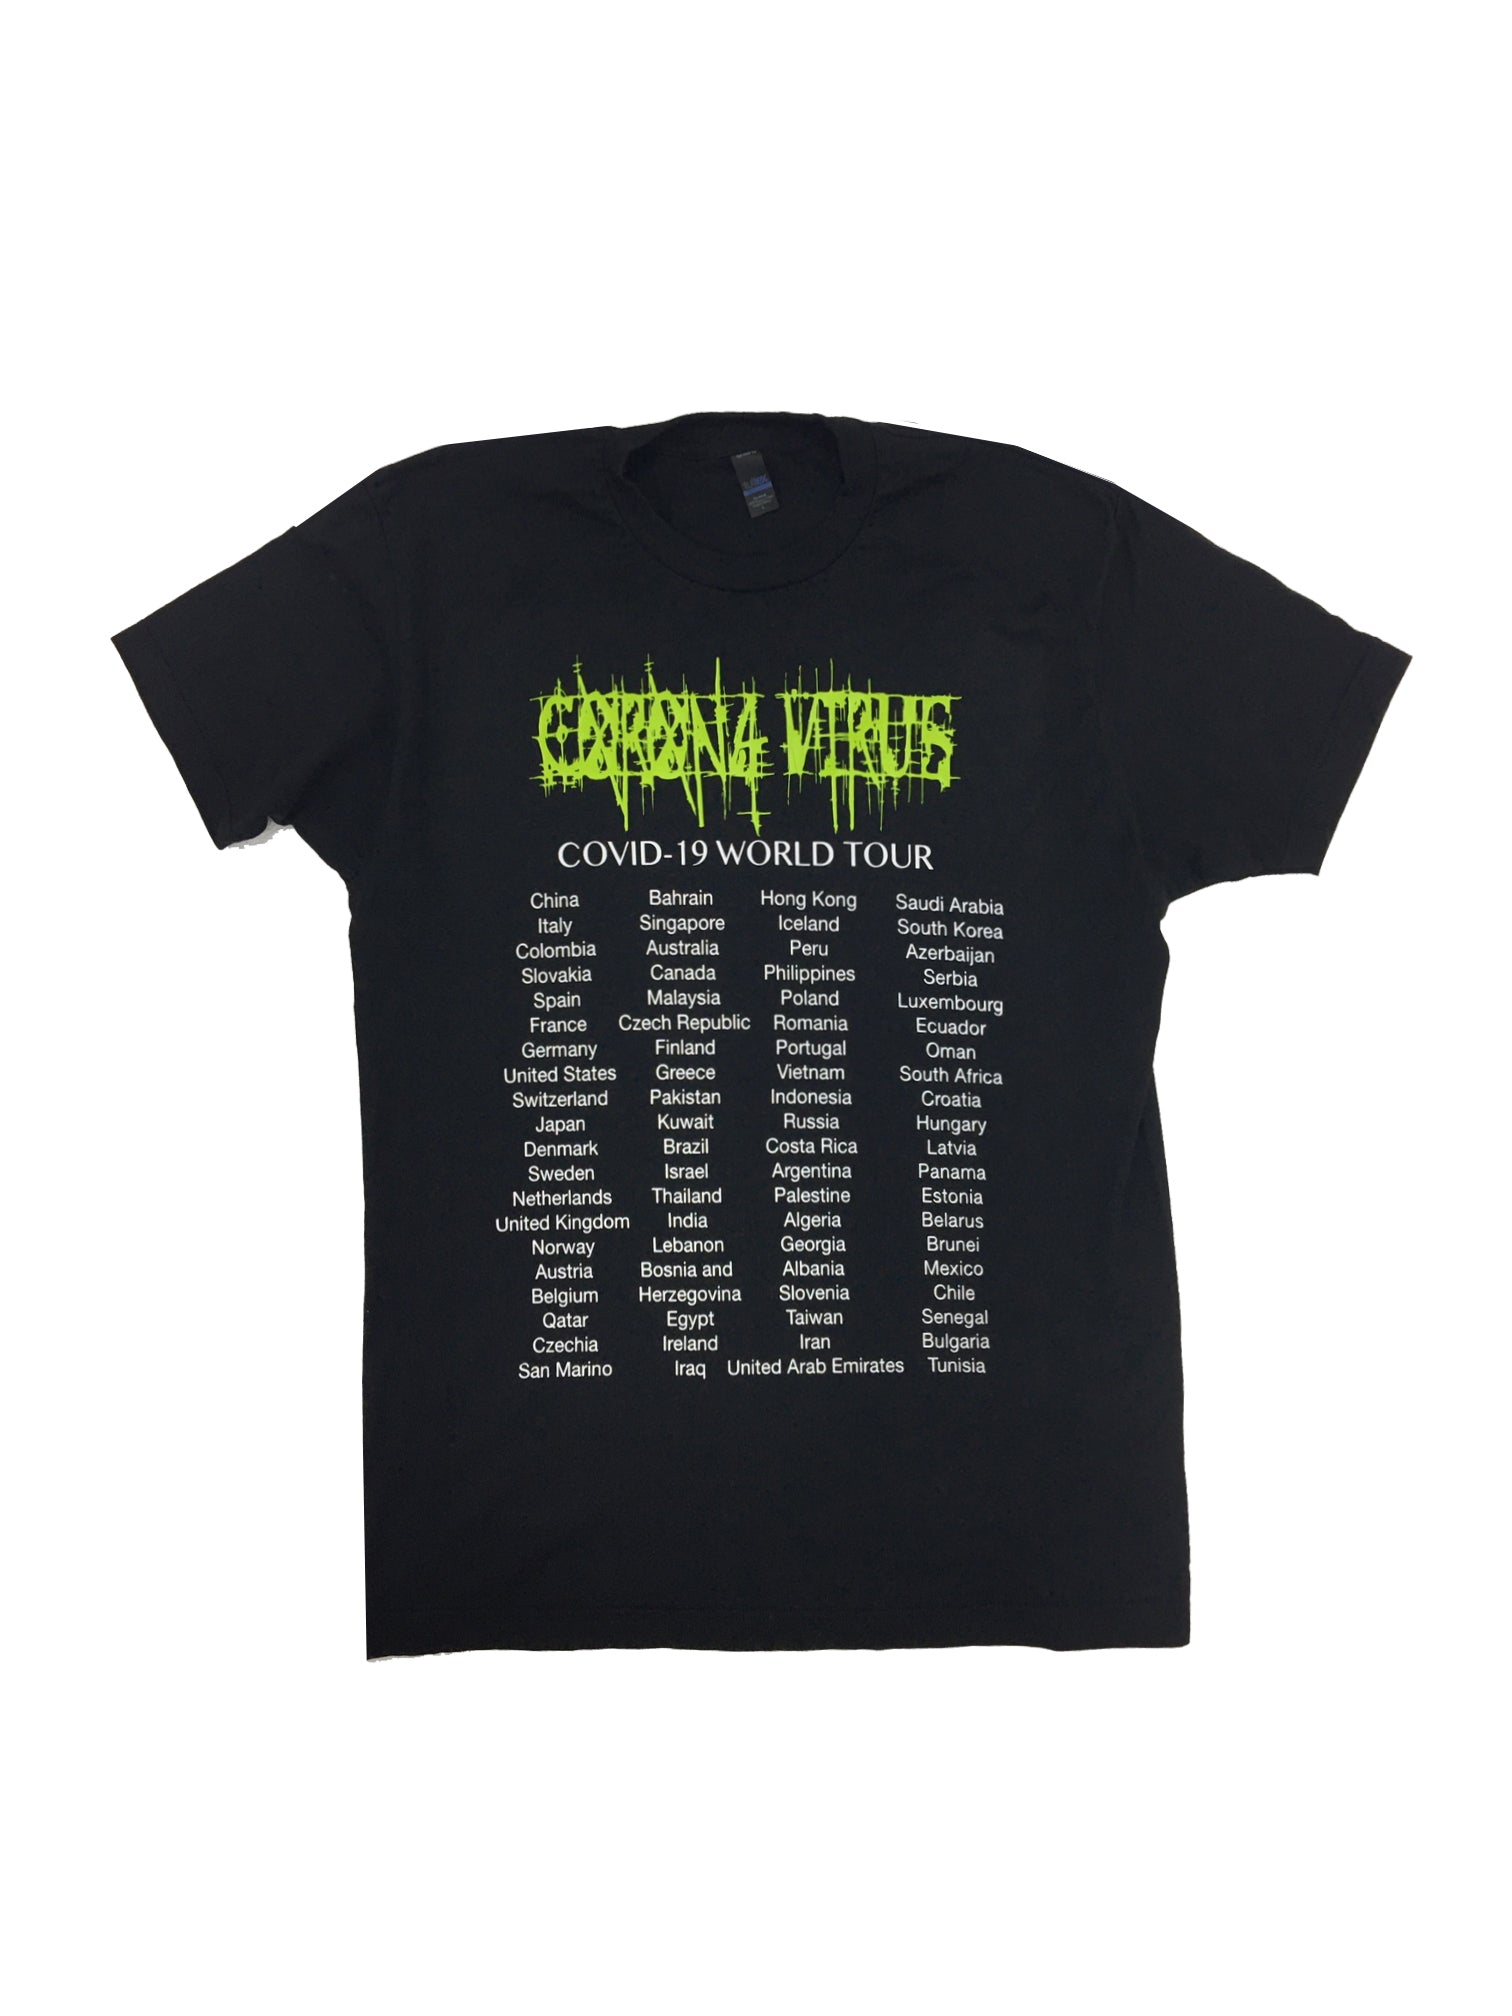 Corona Virus Tee World Tour